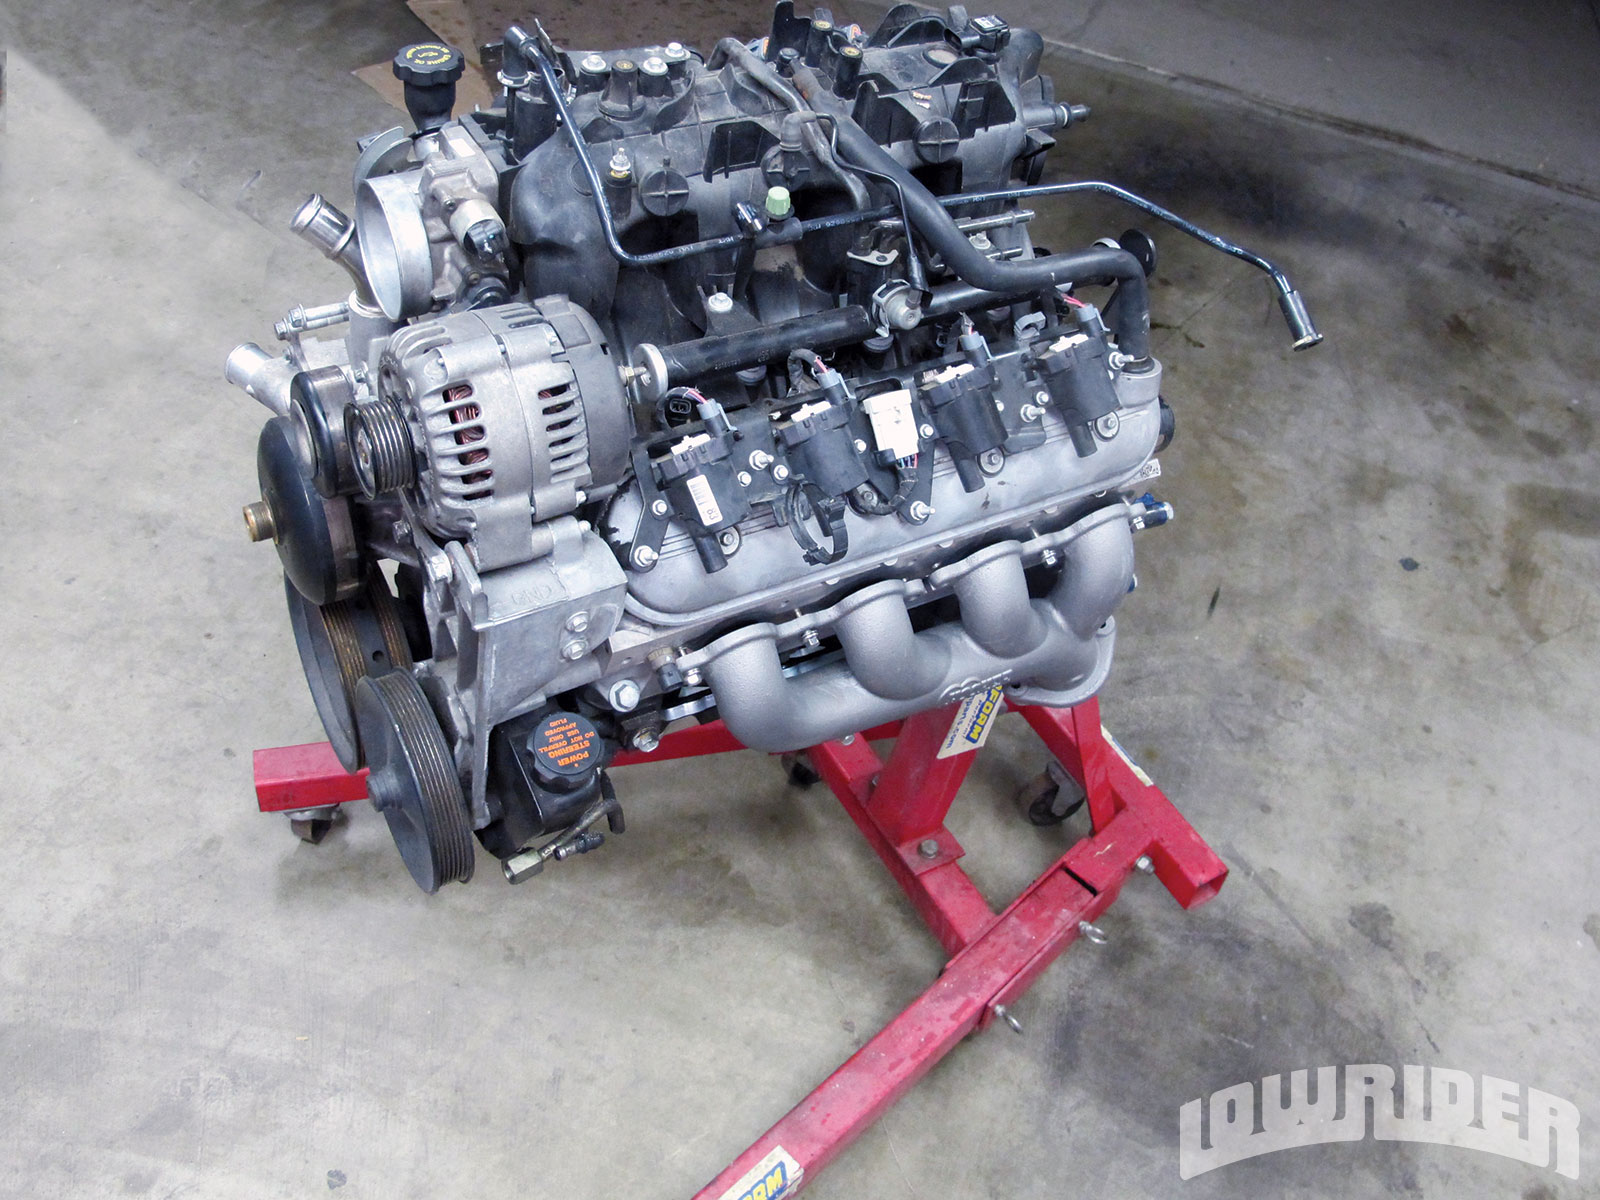 <strong>22</strong>. With all of the minor modifications and test fitting completed, this engine was ready to be transplanted.